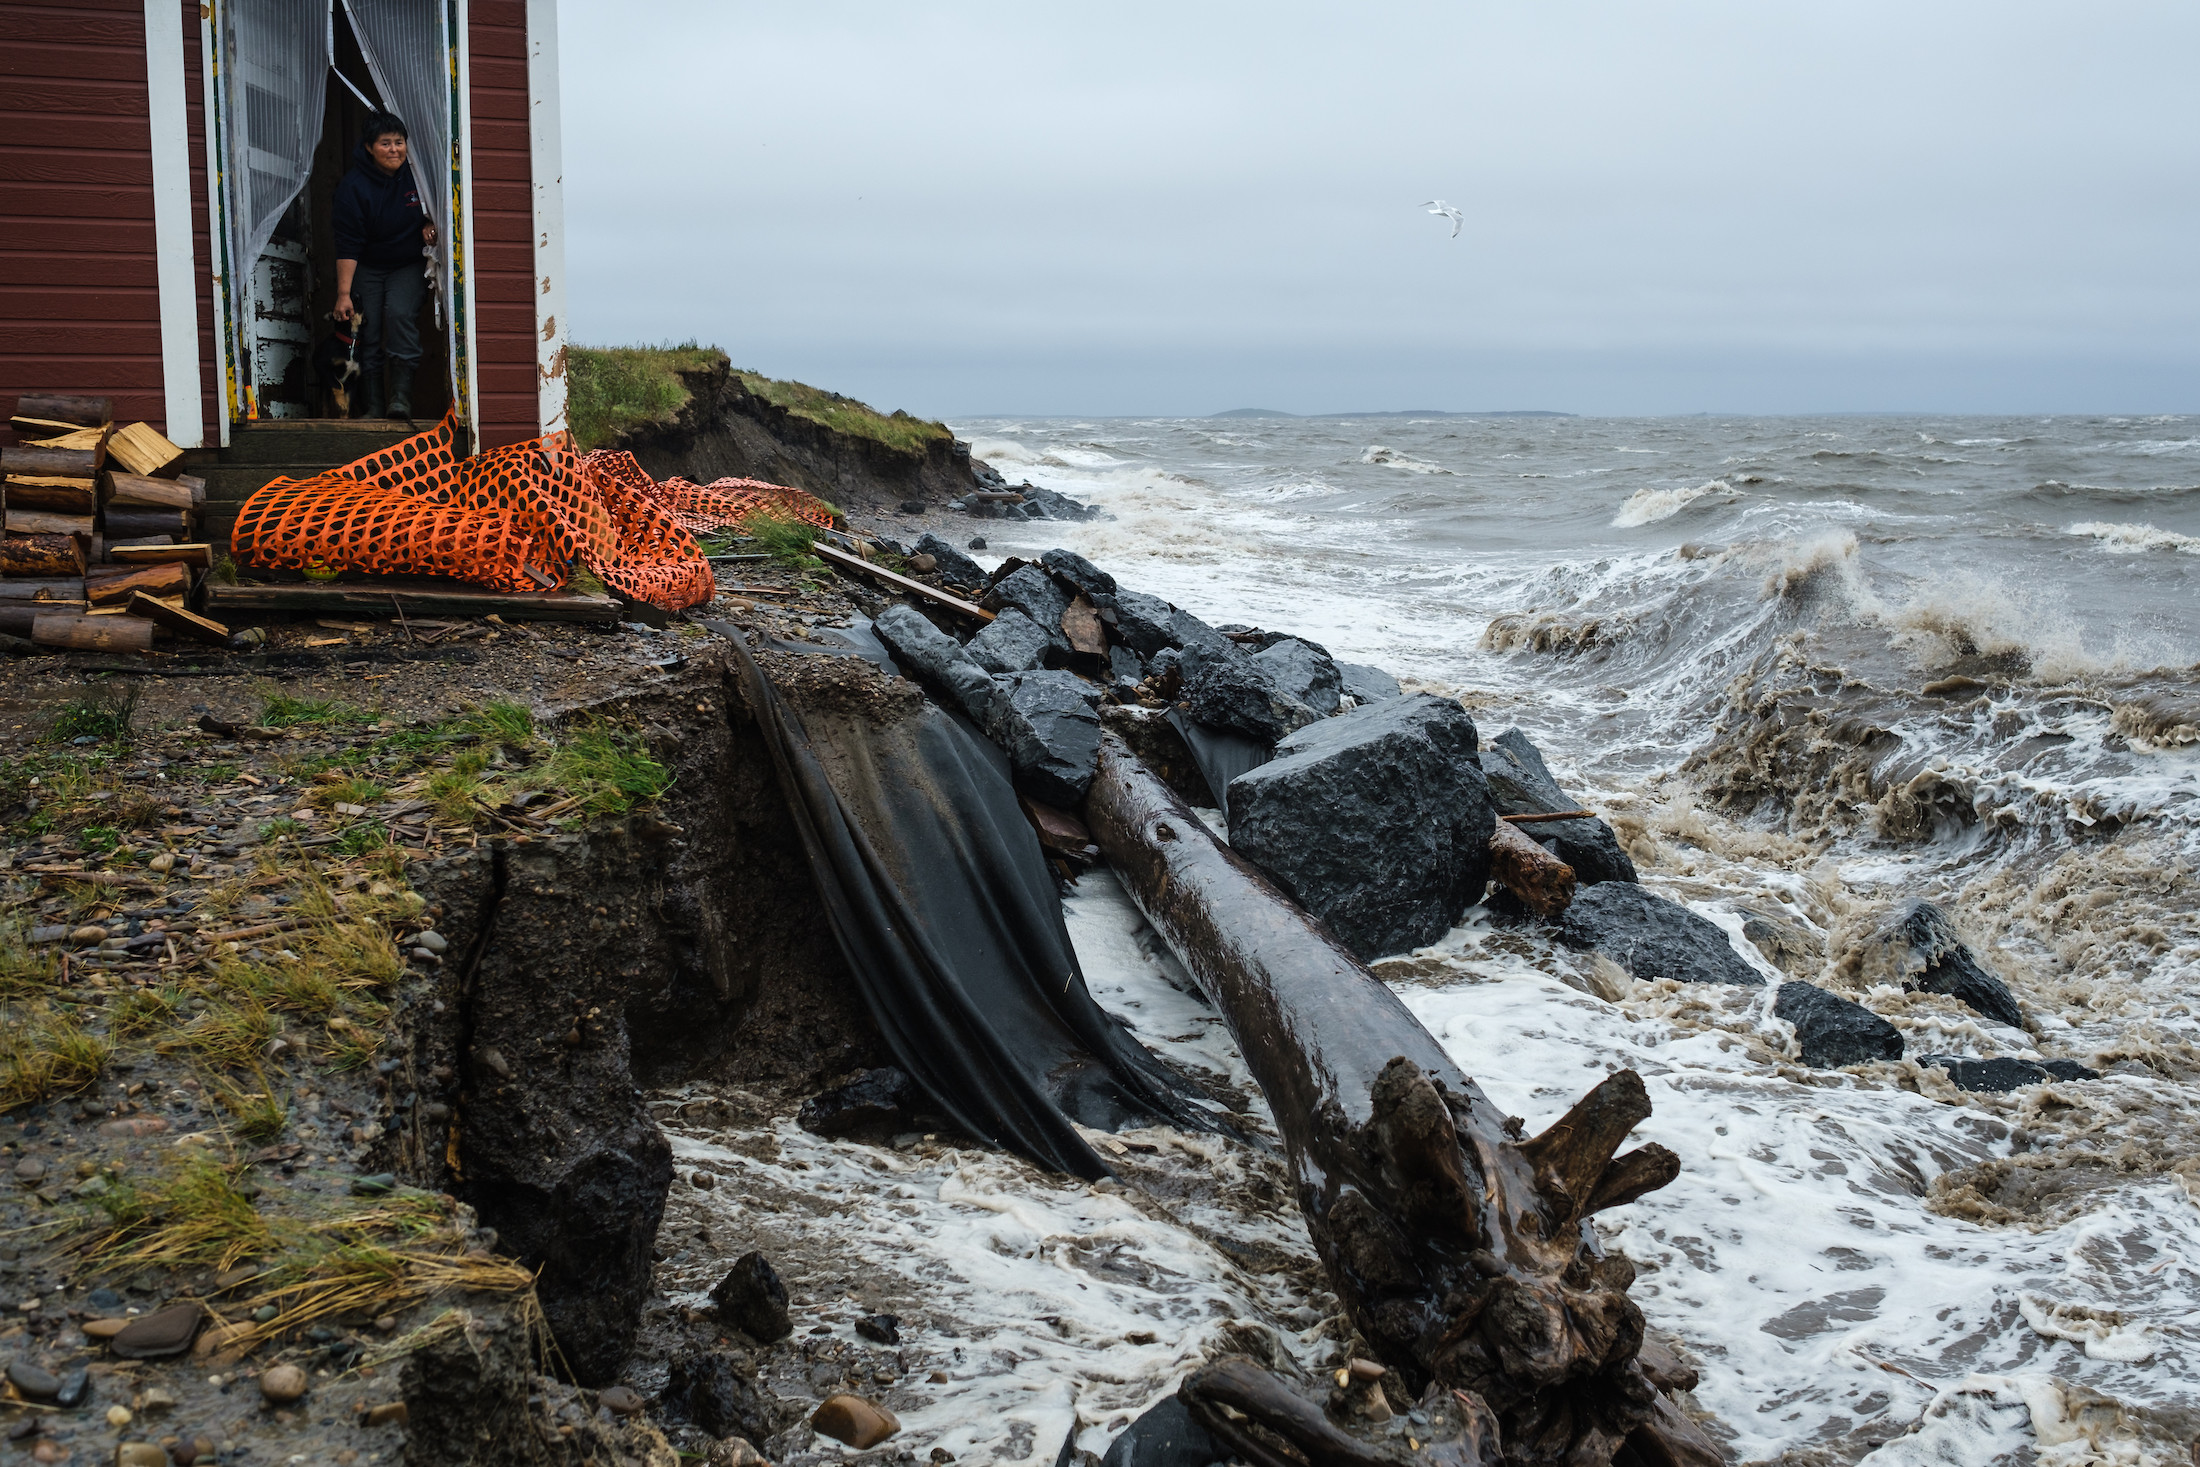 Climate Tuktoyaktuk The Point Coastal Erosion Weronika Murray